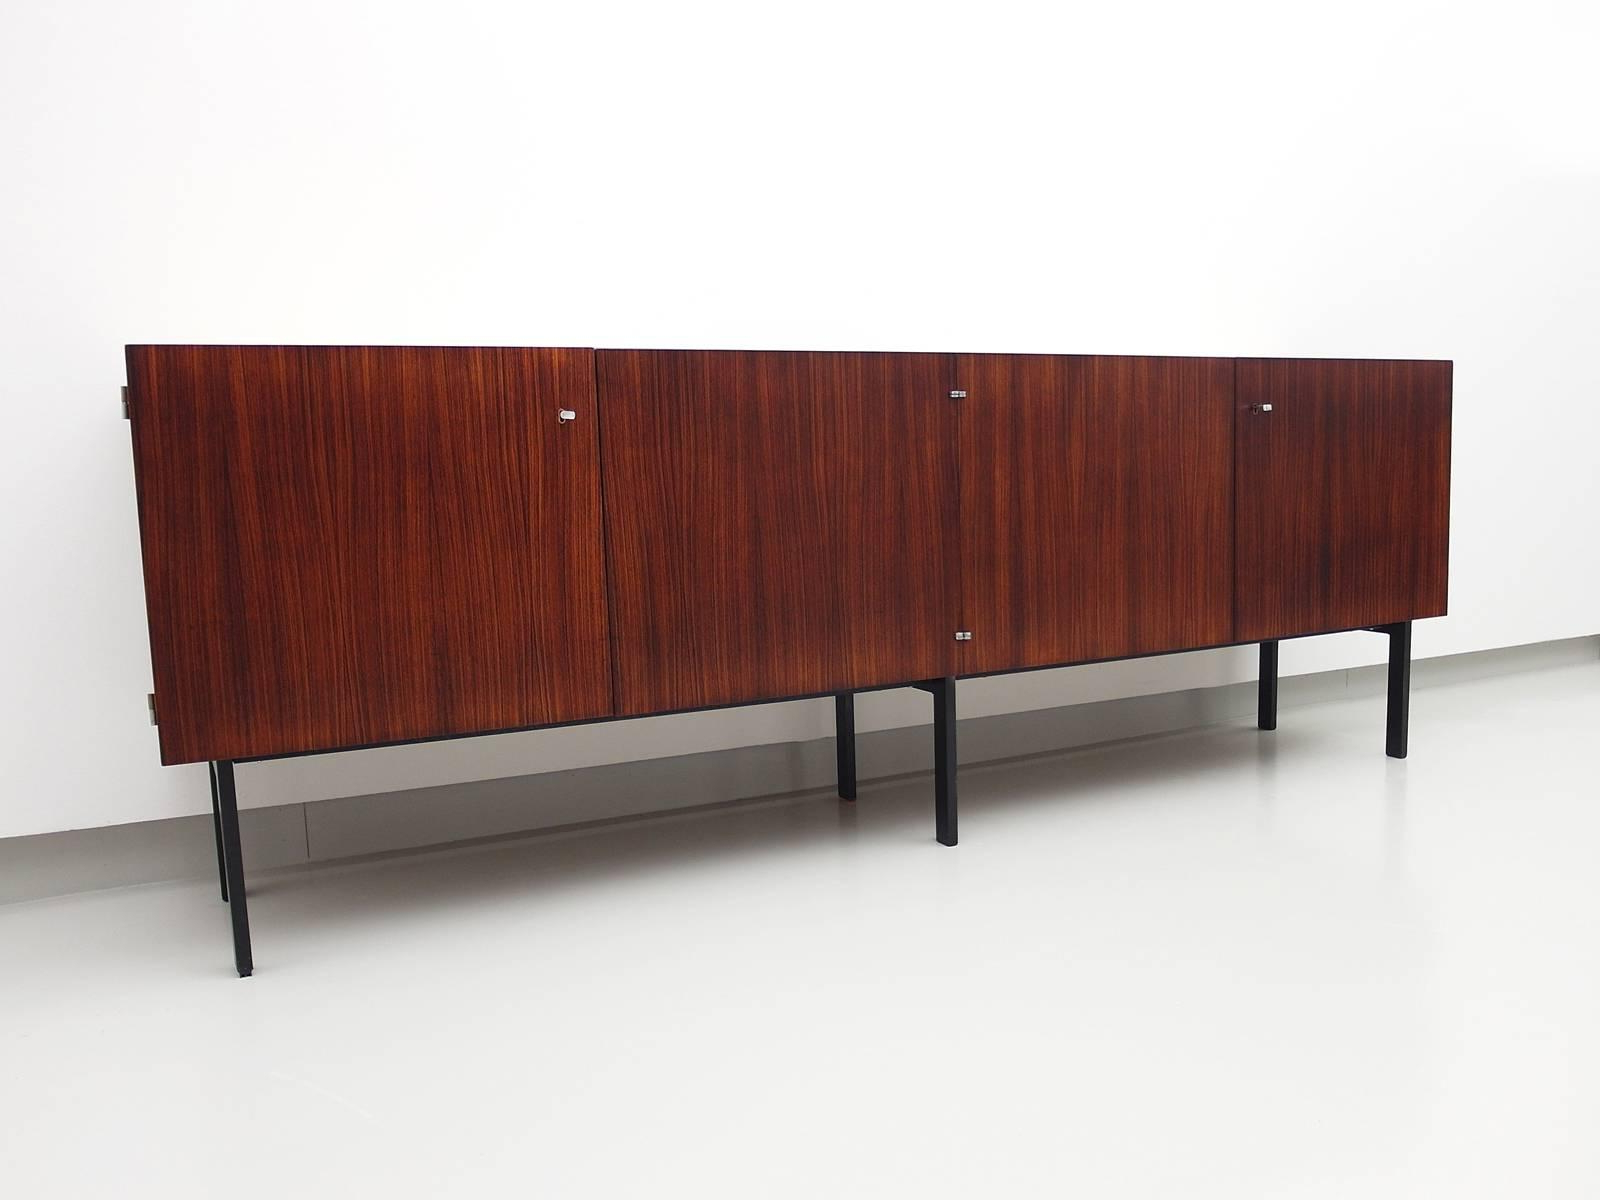 Current Etienne Sideboards In Rosewood Sideboard Attributed To Etienne Fermigier For Meubles Et Fonction,  1961 (Gallery 16 of 20)